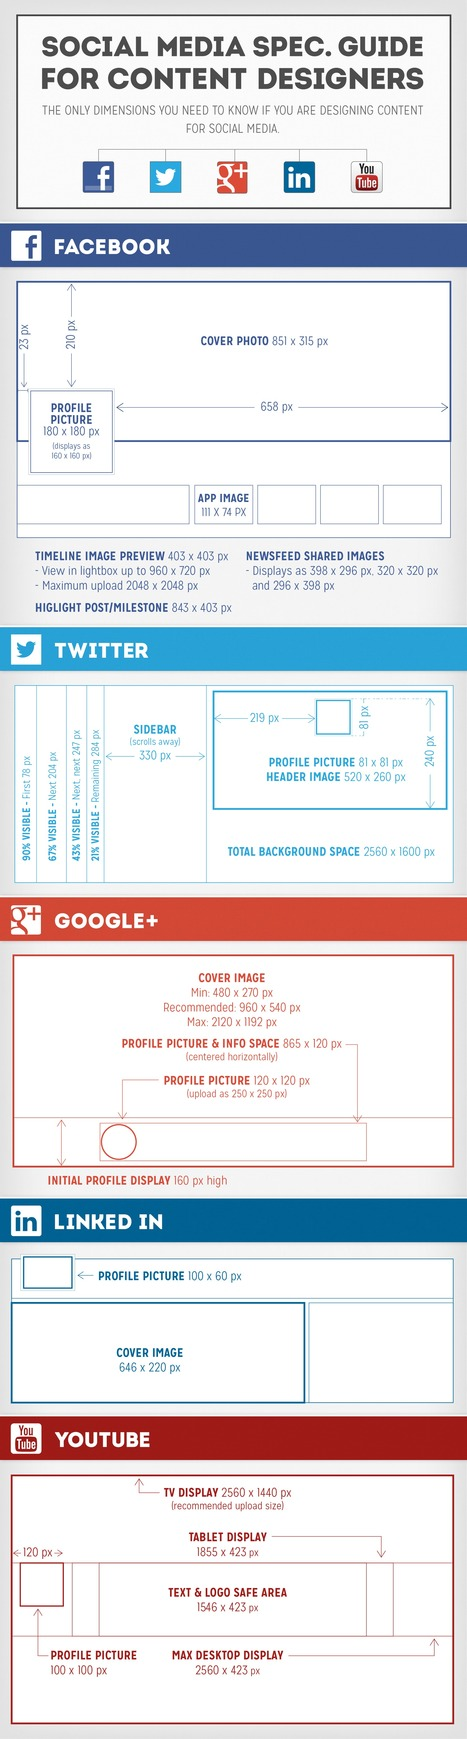 Social Media Image Size Guide [INFOGRAPHIC] | COMMUNITY MANAGEMENT - CM2 | Scoop.it